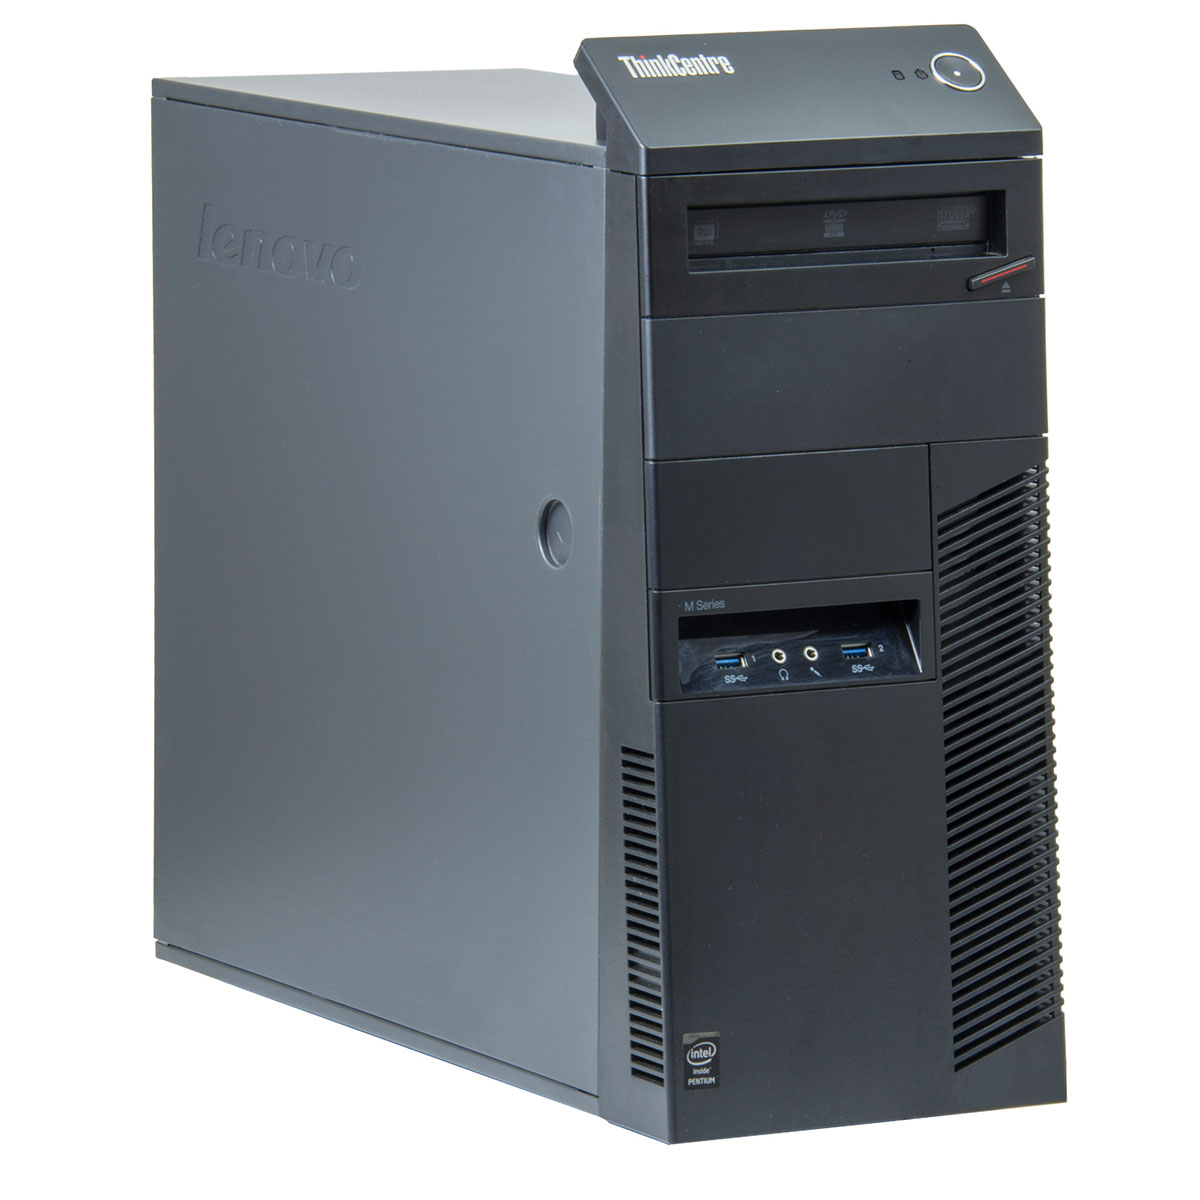 Lenovo ThinkCentre M93P Intel Core i7-4790 3.60GHz  8GB DDR3  256GB SSD  DVD-RW  Tower  calculator refurbished